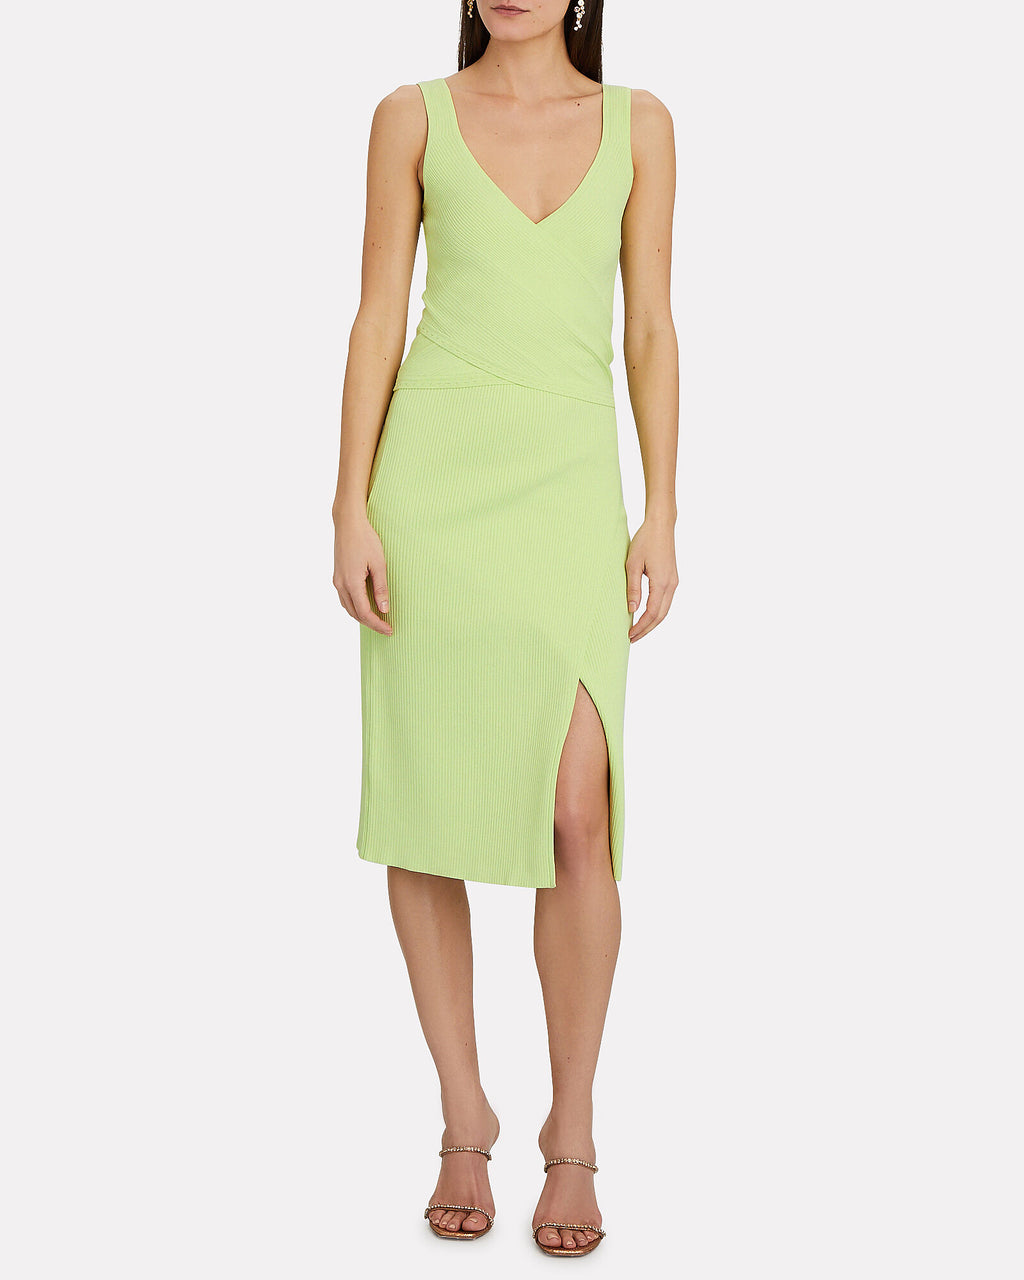 Jonathan Simkhai Jolene Skirt and Top Jada Set Pear